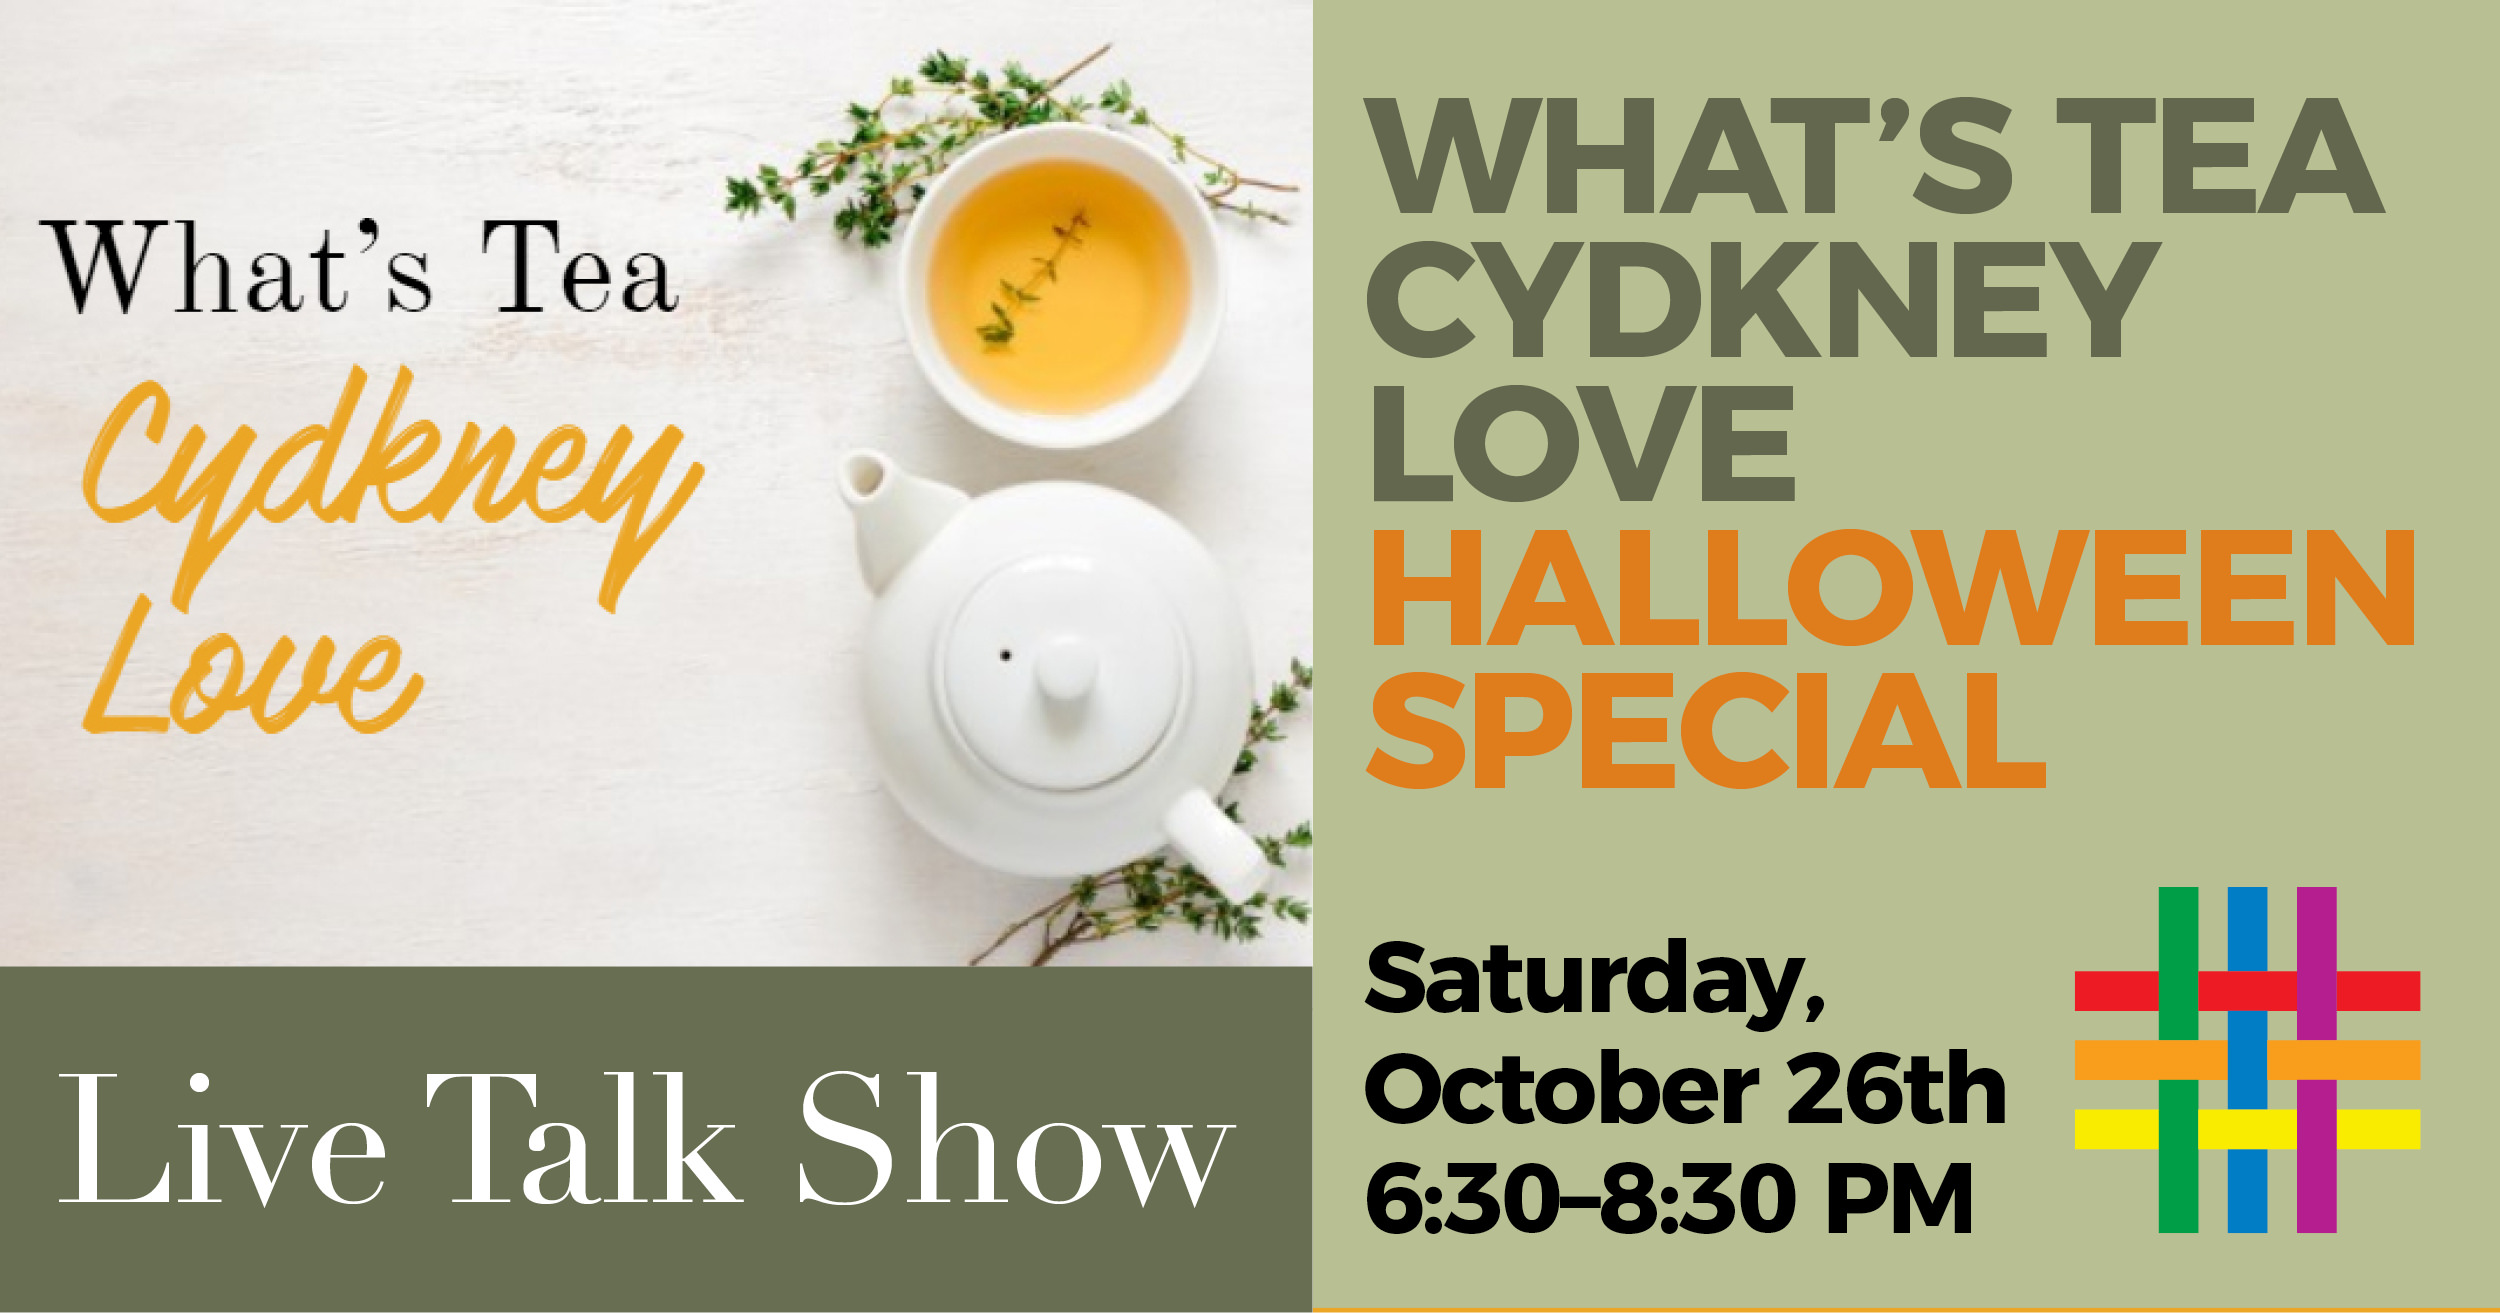 What's Tea Cydkney Love Halloween Special at Brooklyn Community Pride Center